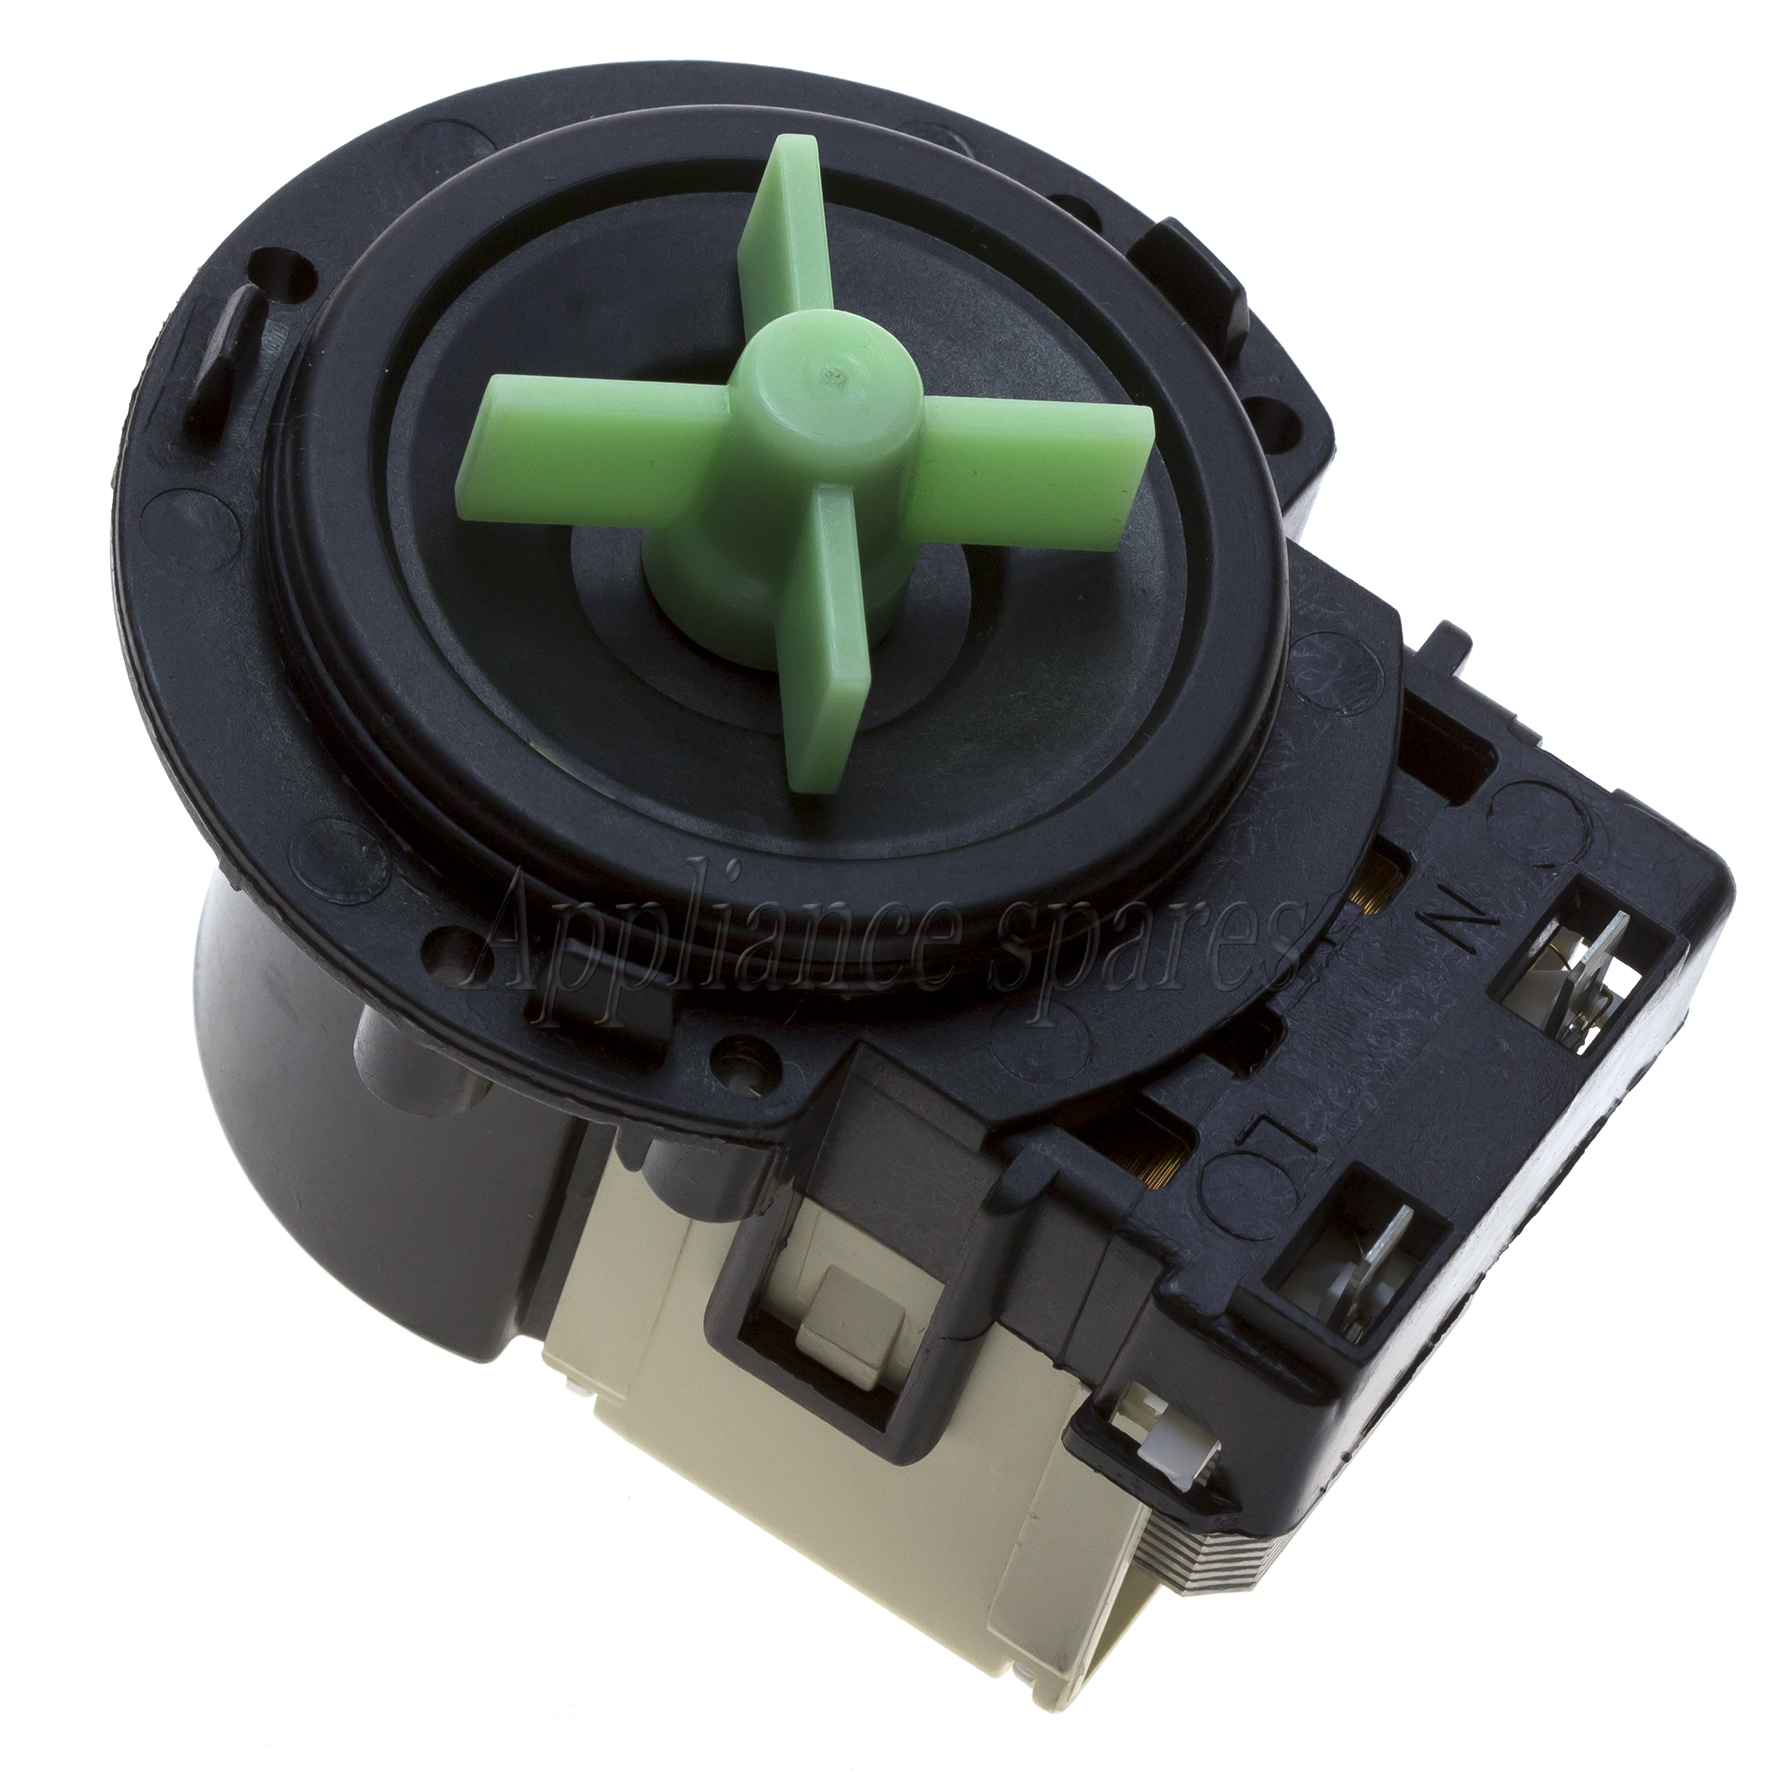 hight resolution of lg front loader washing machine drain pump motor